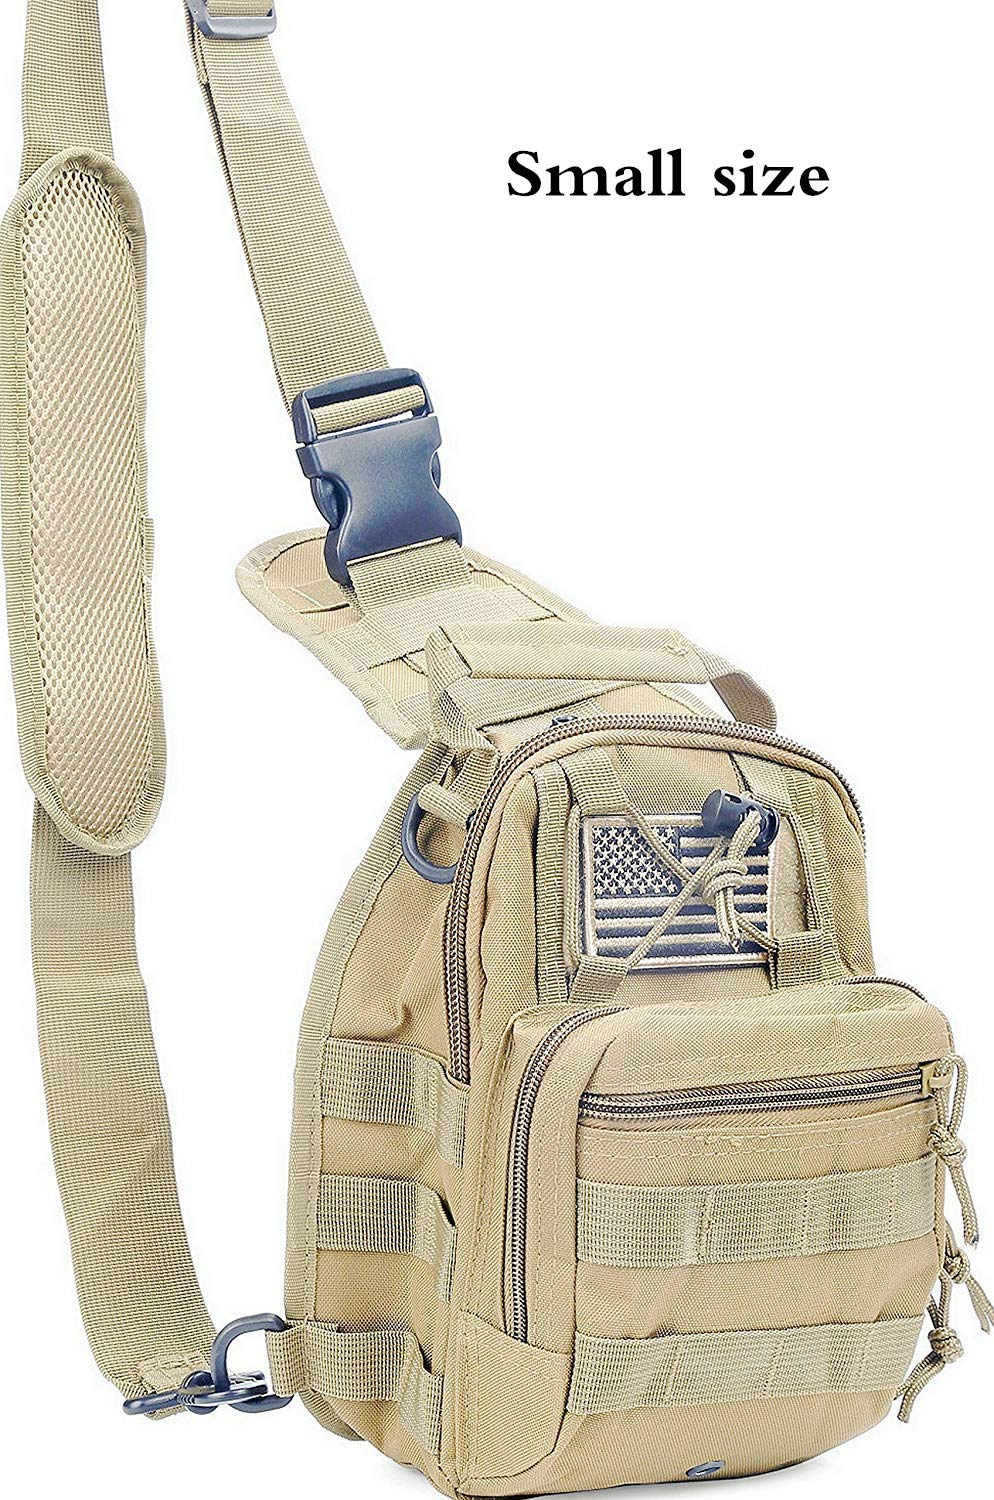 boxuan Tactical Sling Bag Pack Military Rover Shoulder Sling Backpack EDC Molle Assault Range Bags Day Pack with Tactical USA Flag Patch (Medium /& Small Sizes) boxuan2017612